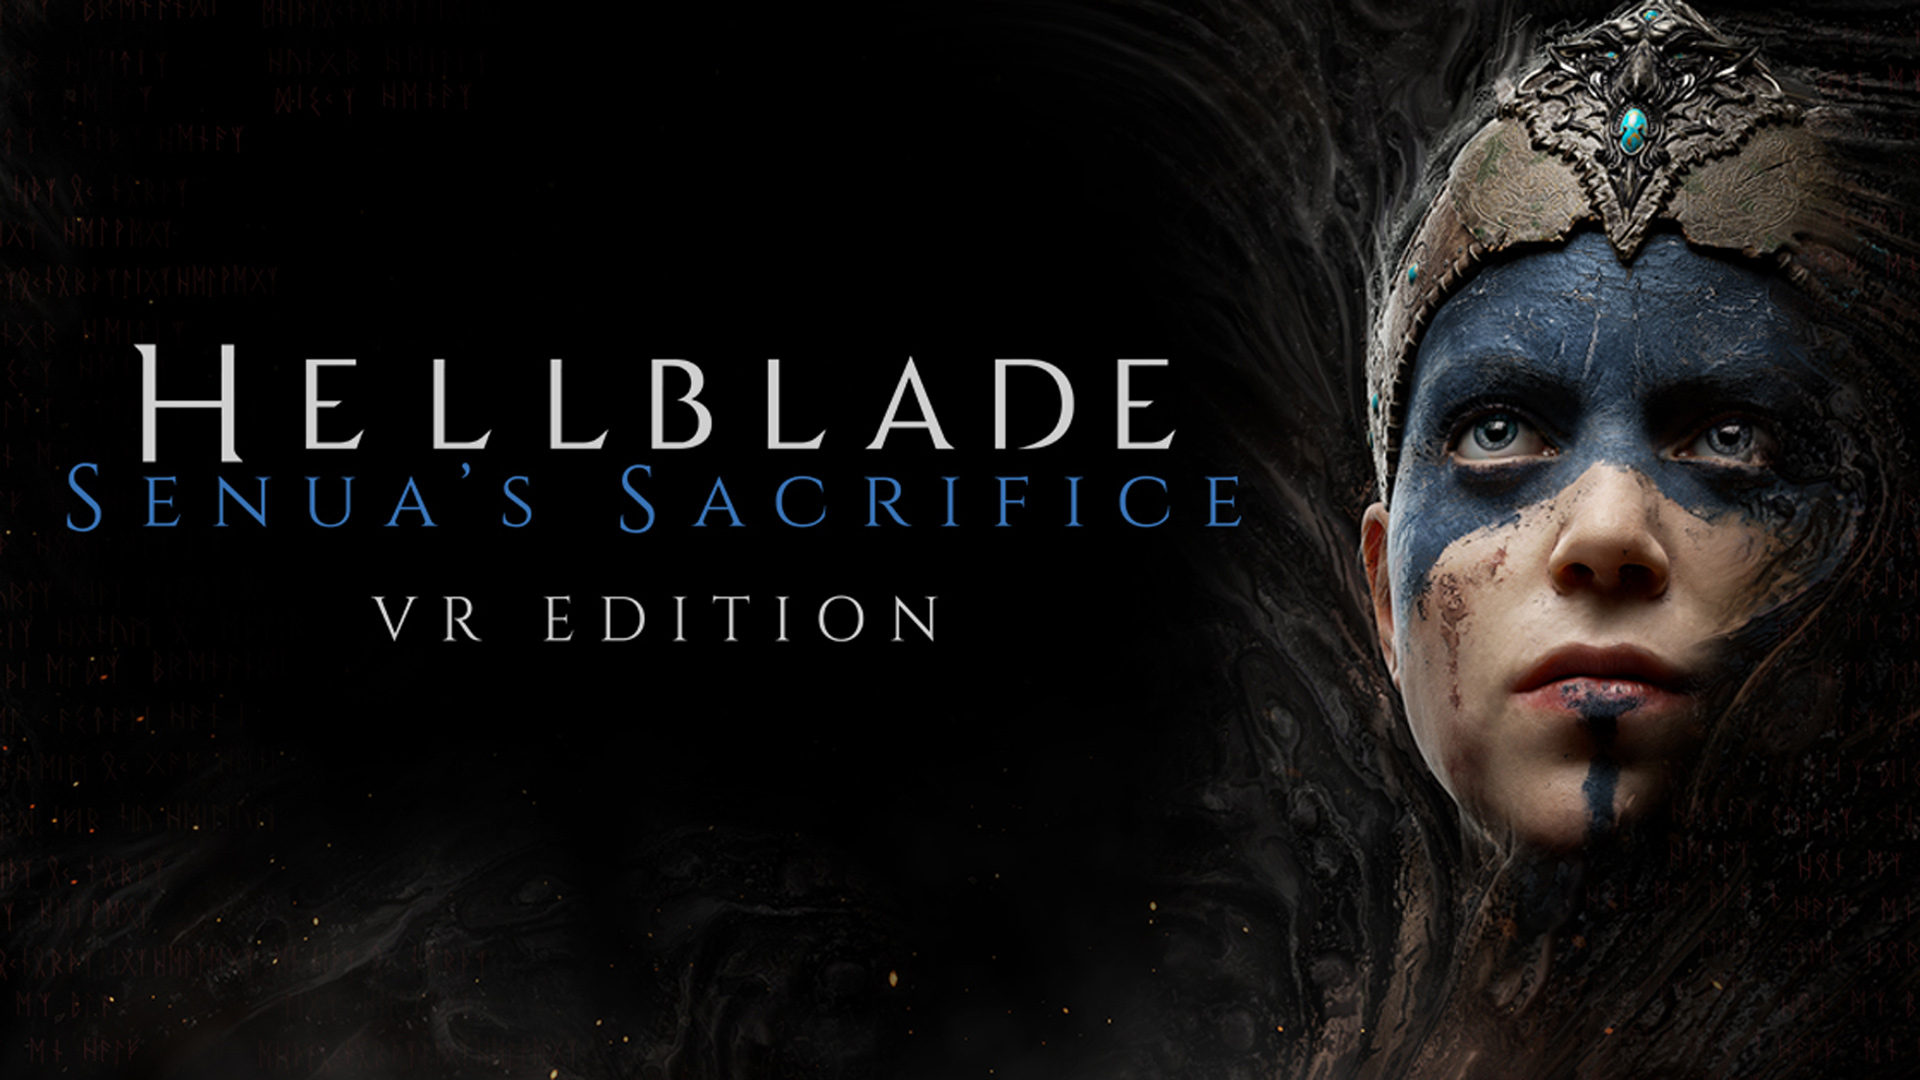 Hellblade Senua's Sacrifice VR Edition Is Out Now And On Sale